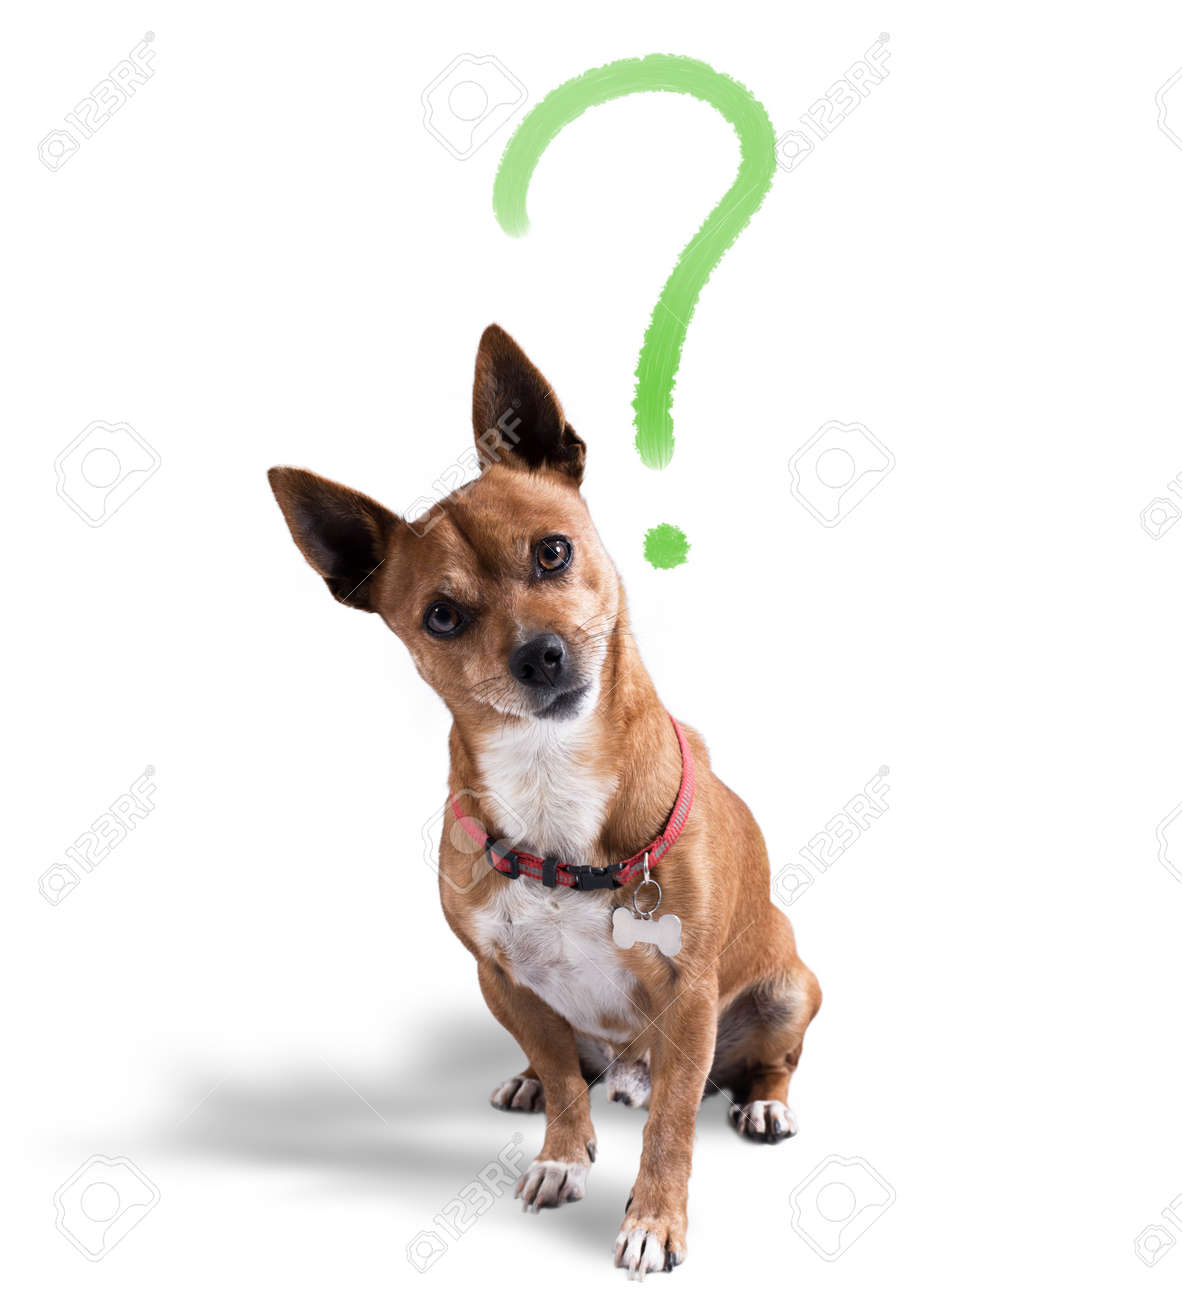 Dog with quizzical expression Standard-Bild - 73105920